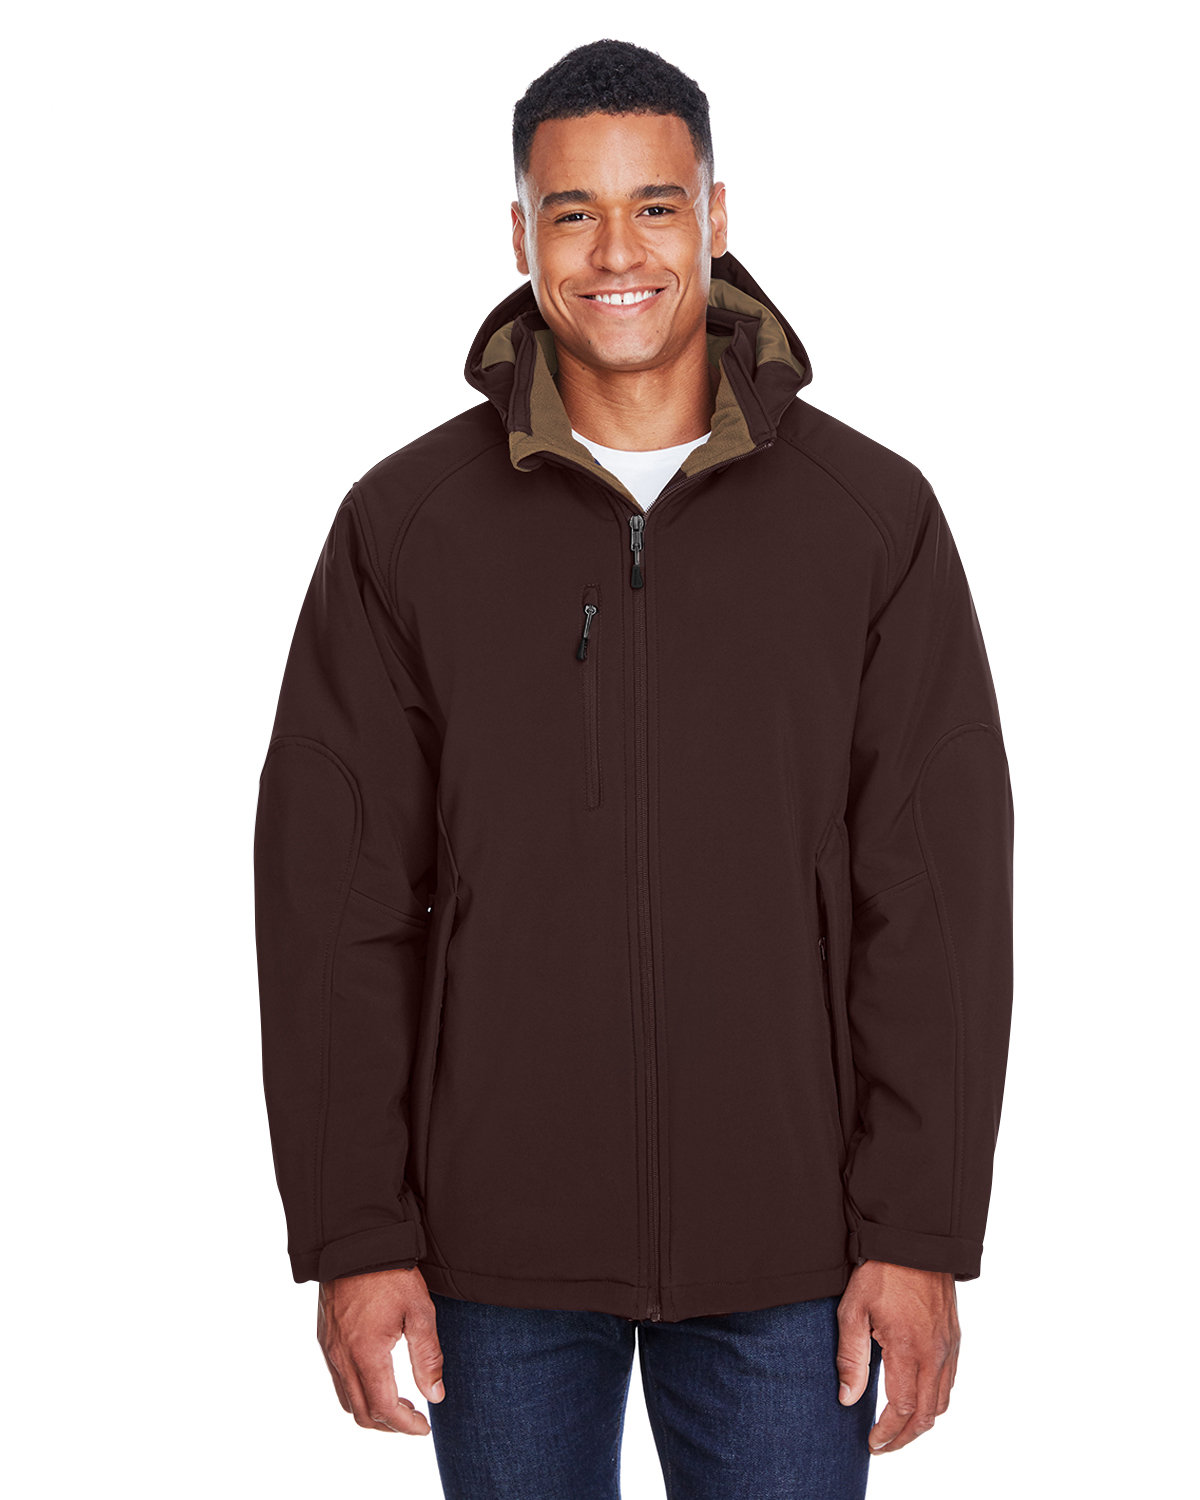 North End Men's Glacier Insulated Three-Layer Fleece Bonded Soft Shell Jacket with Detachable Hood DARK CHOCOLATE